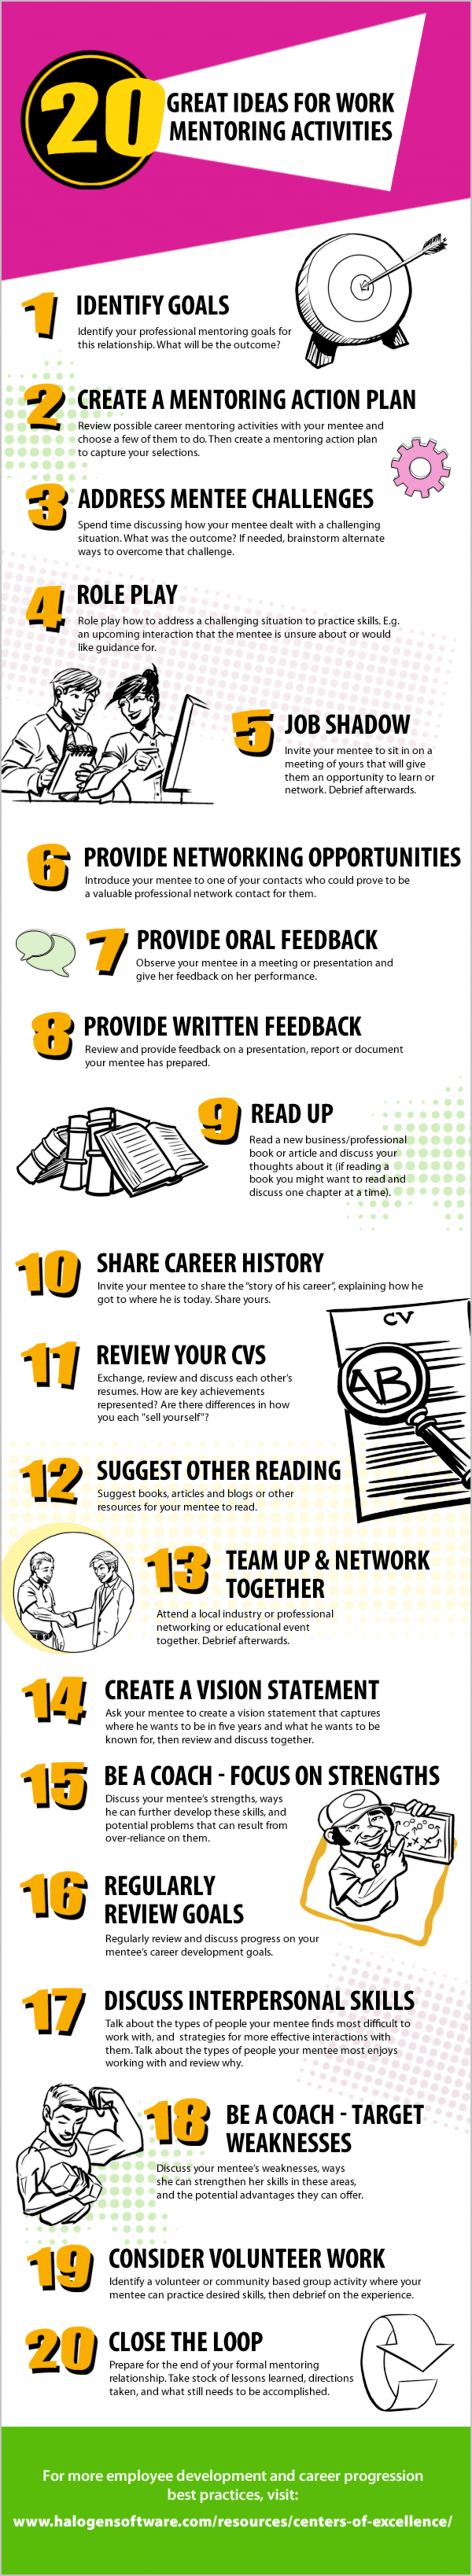 20 Great Ideas For Work Mentoring Activities Infographic